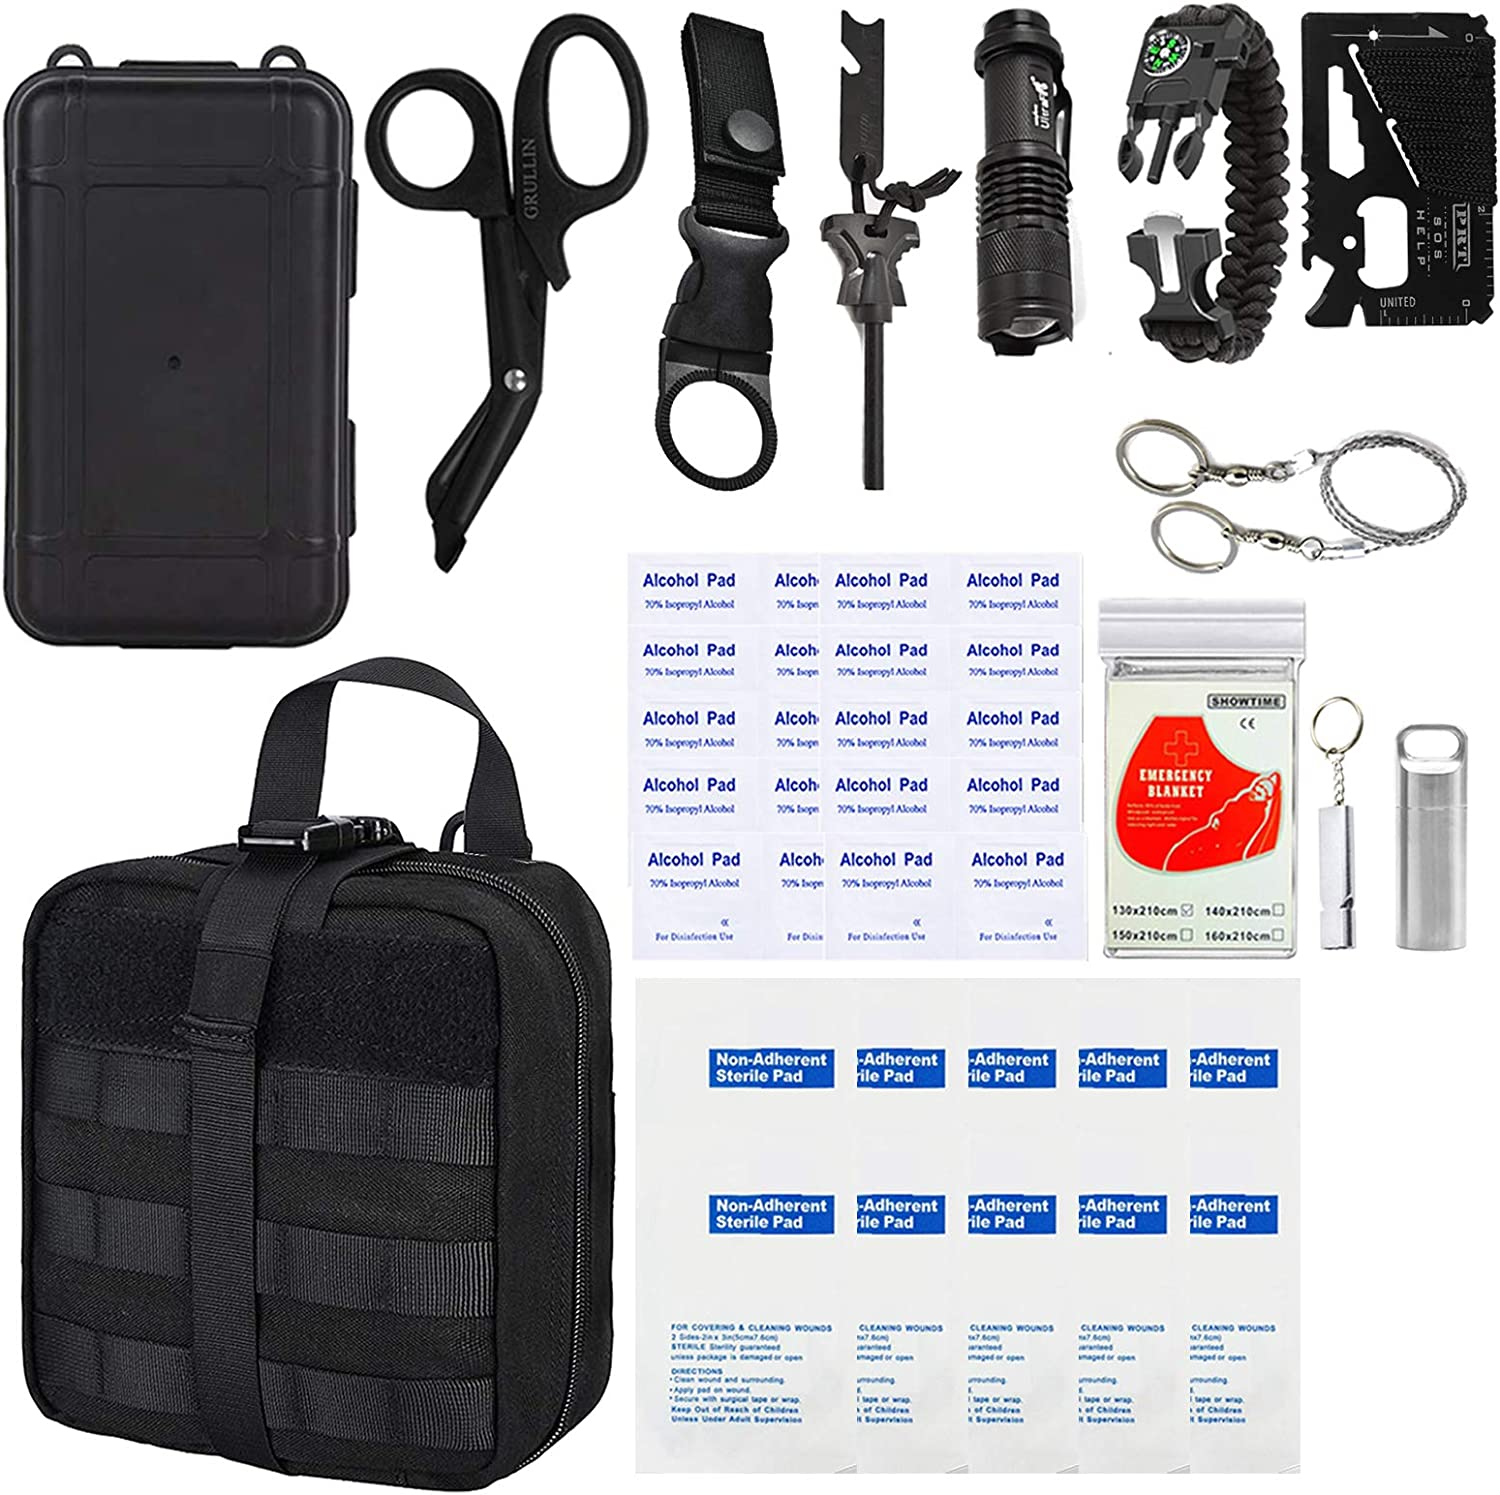 Purchase GRULLIN Outdoor Survival Kit 43 in Multi-Purpose Aid 1 Em First Colorado Springs Mall